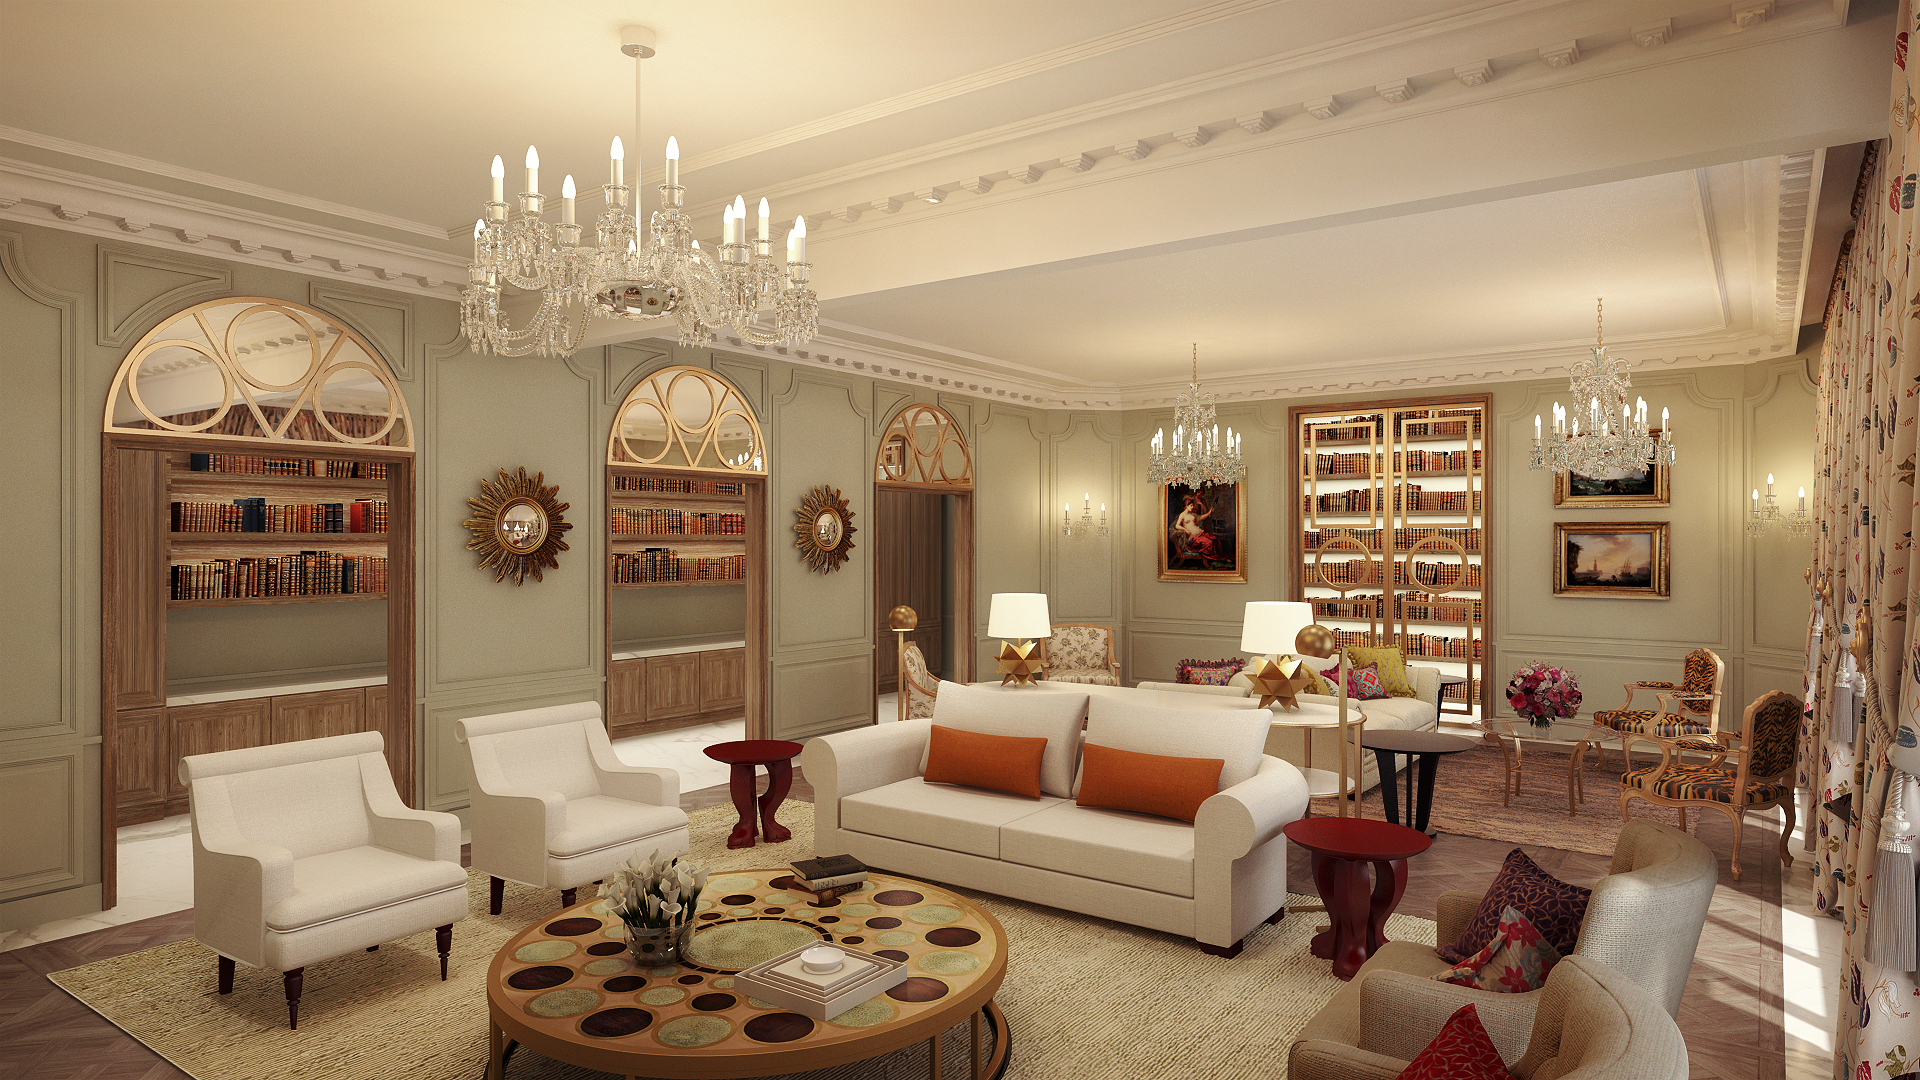 Appartement haussmannien paris miguel diaz infographiste 3d - Appartement haussmannien paris ...